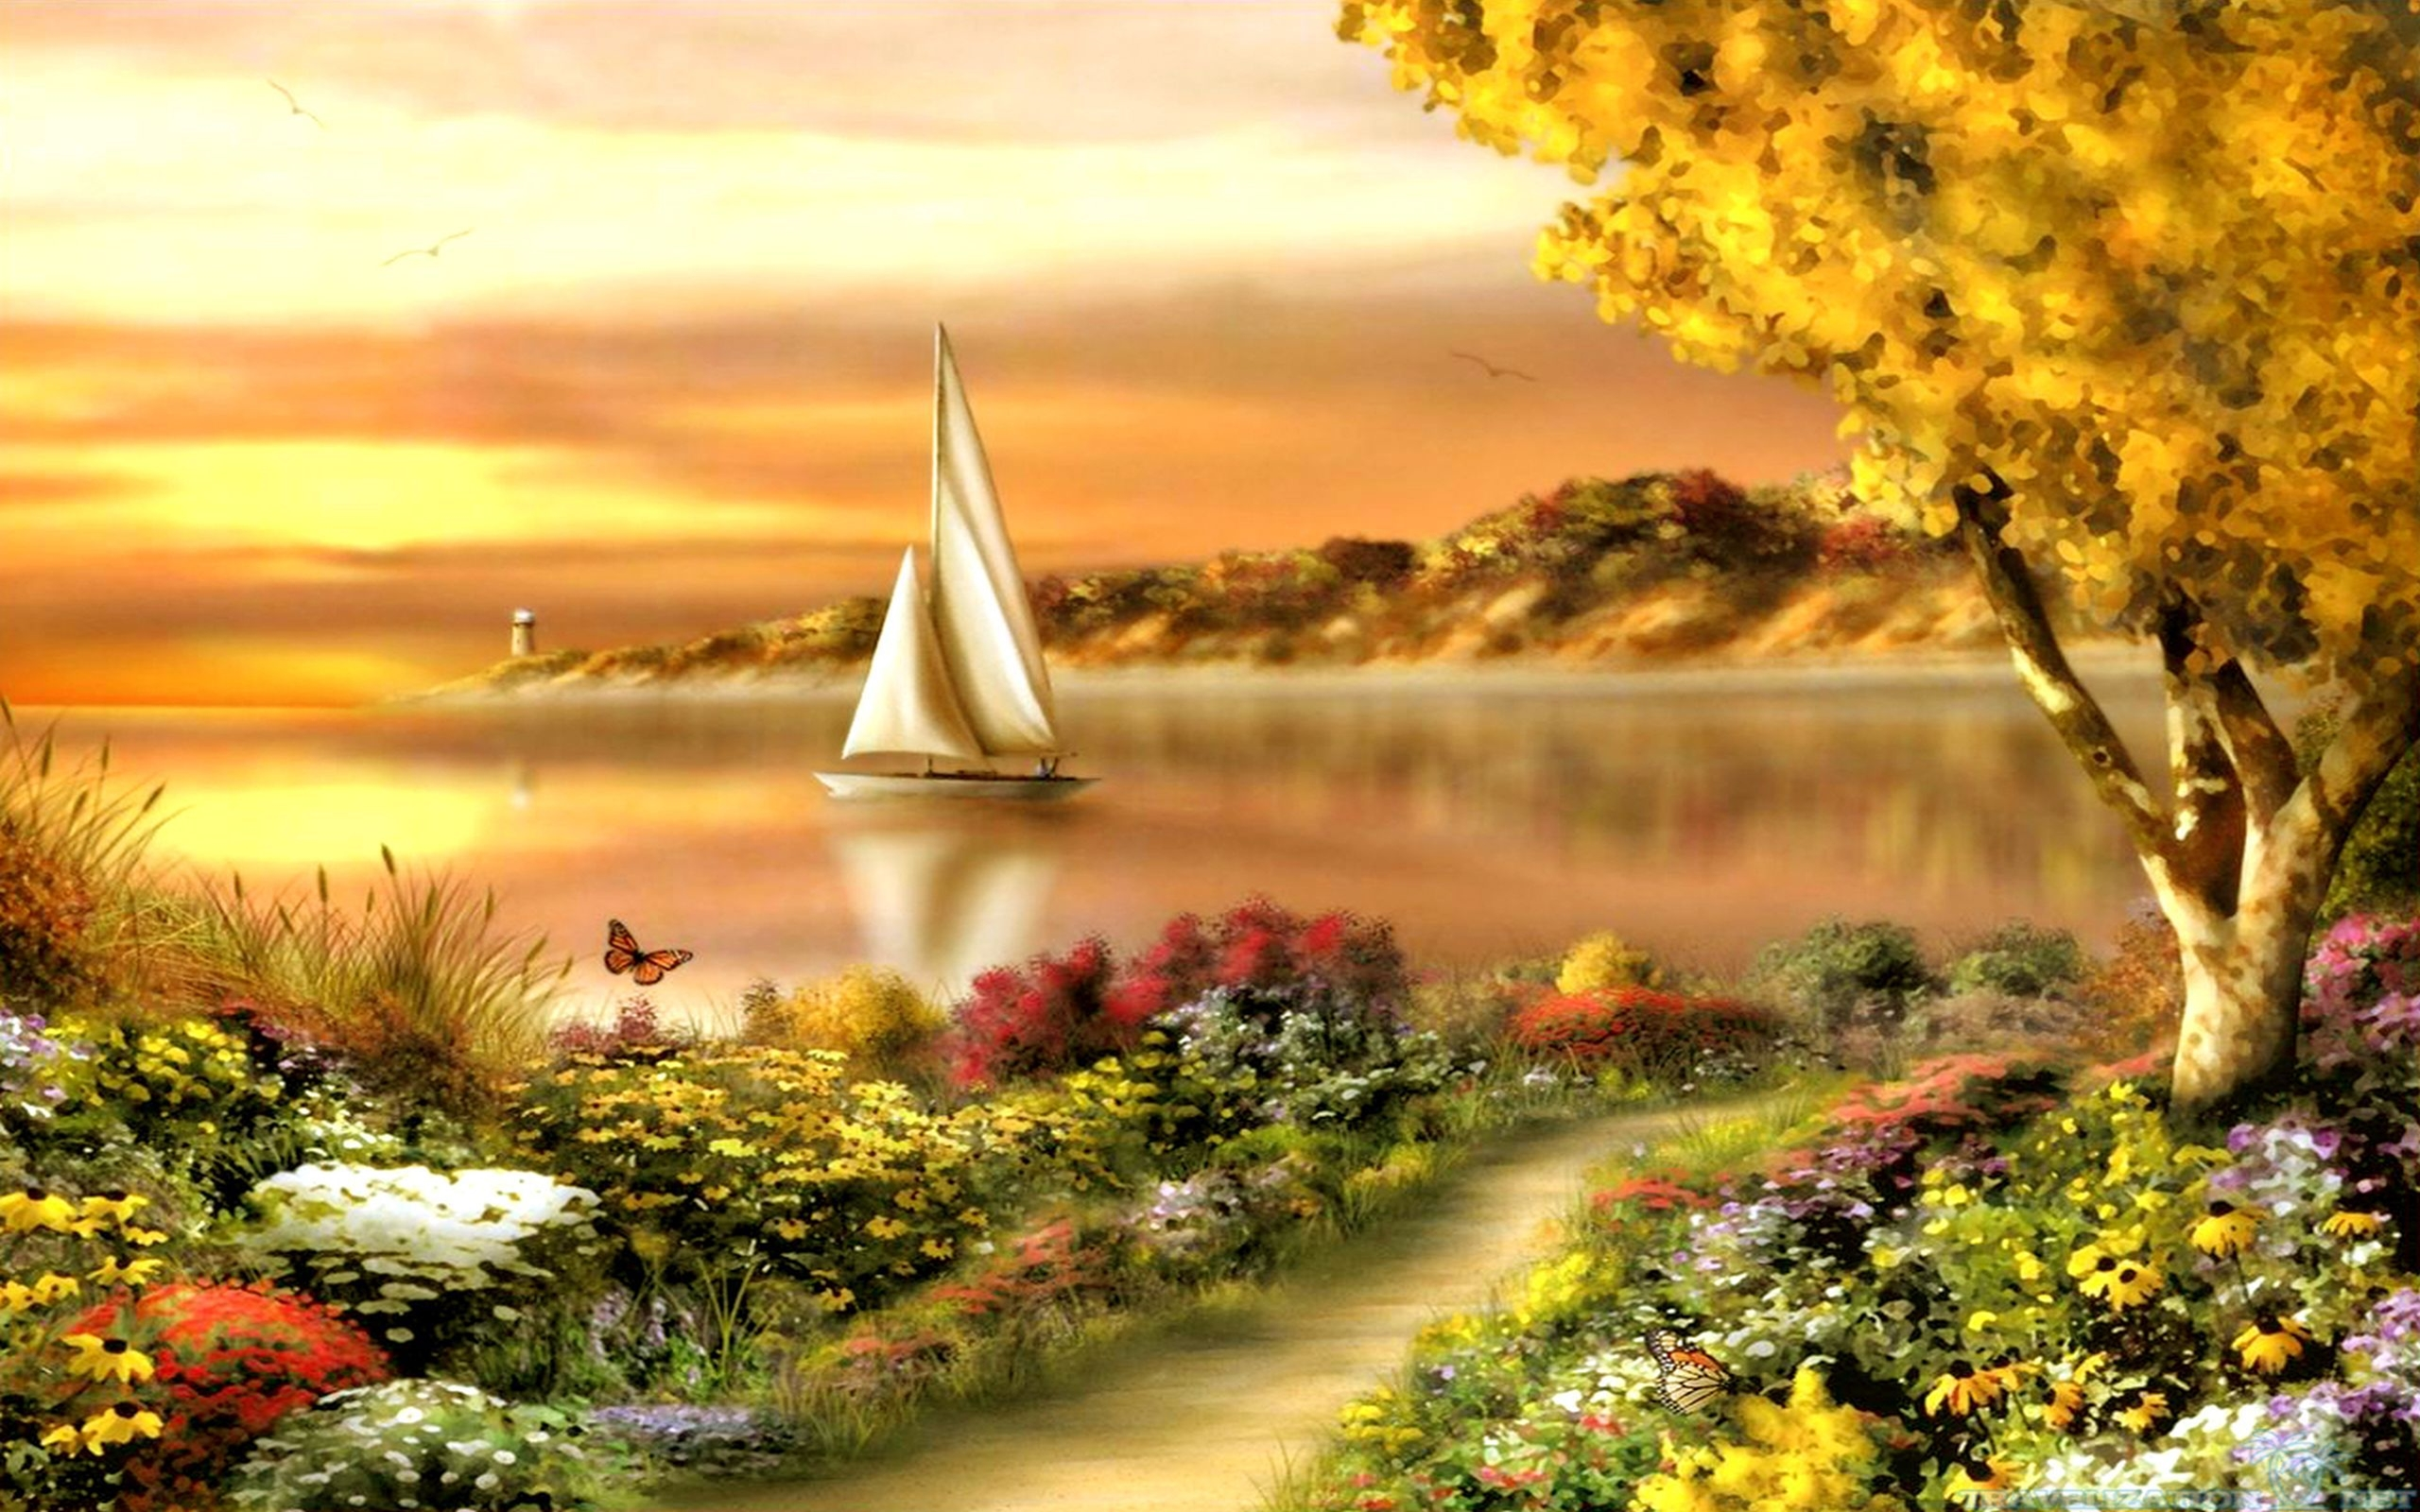 Late Fall Wallpaper Nature Summer Scenes Wallpapers 2560x1600 Wallpapers13 Com